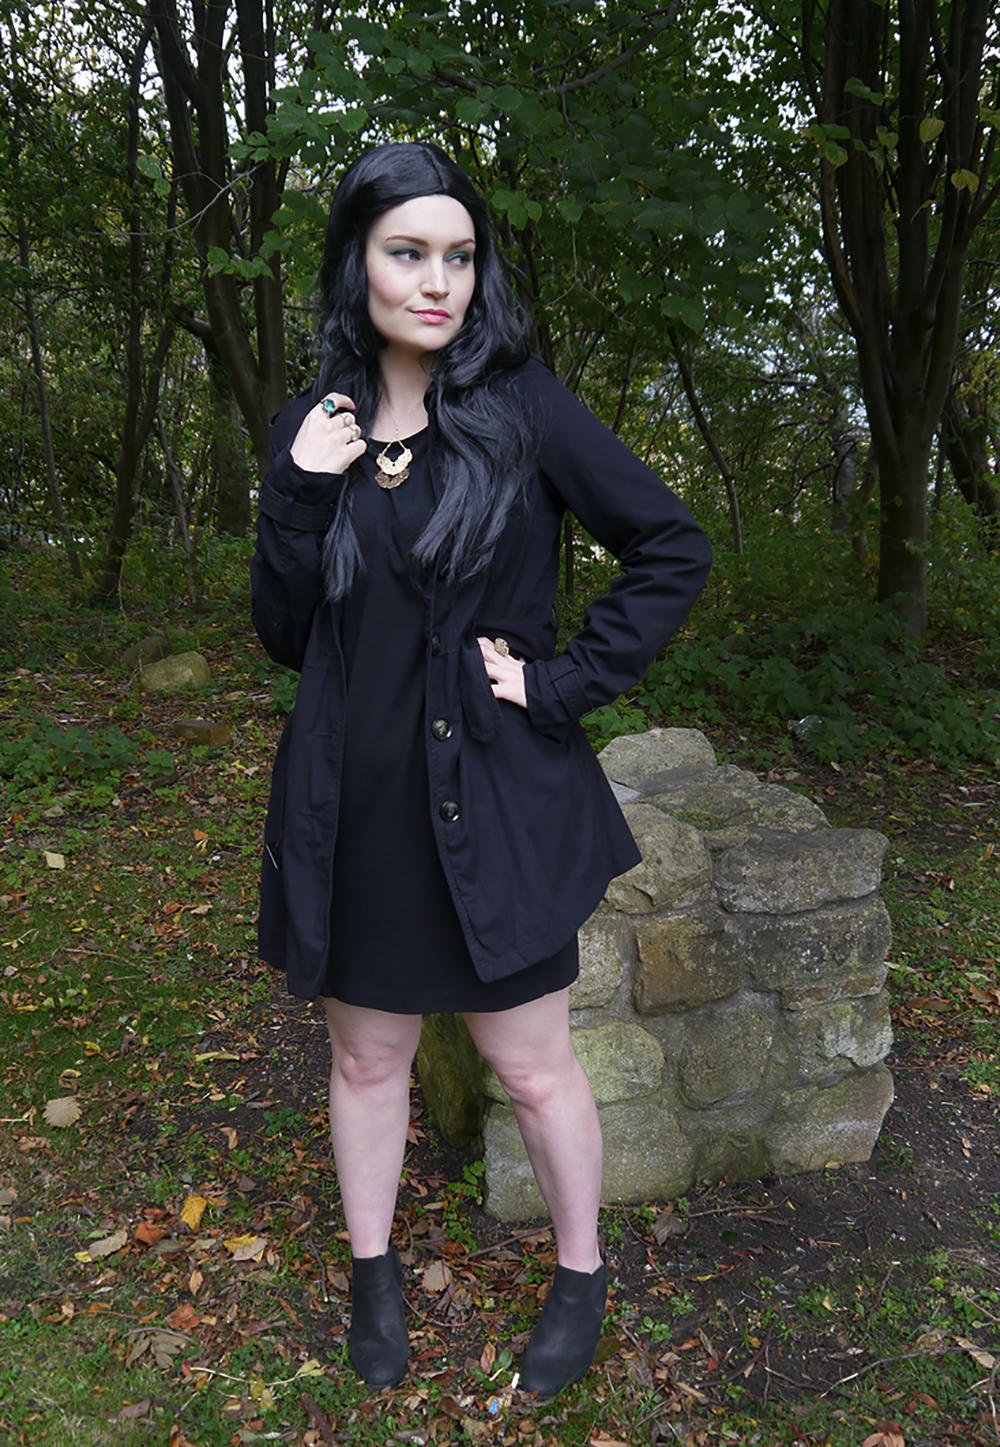 Blogger Wardrobe Conversations demonstrating easy costumes made with a black dress as The Love Witch